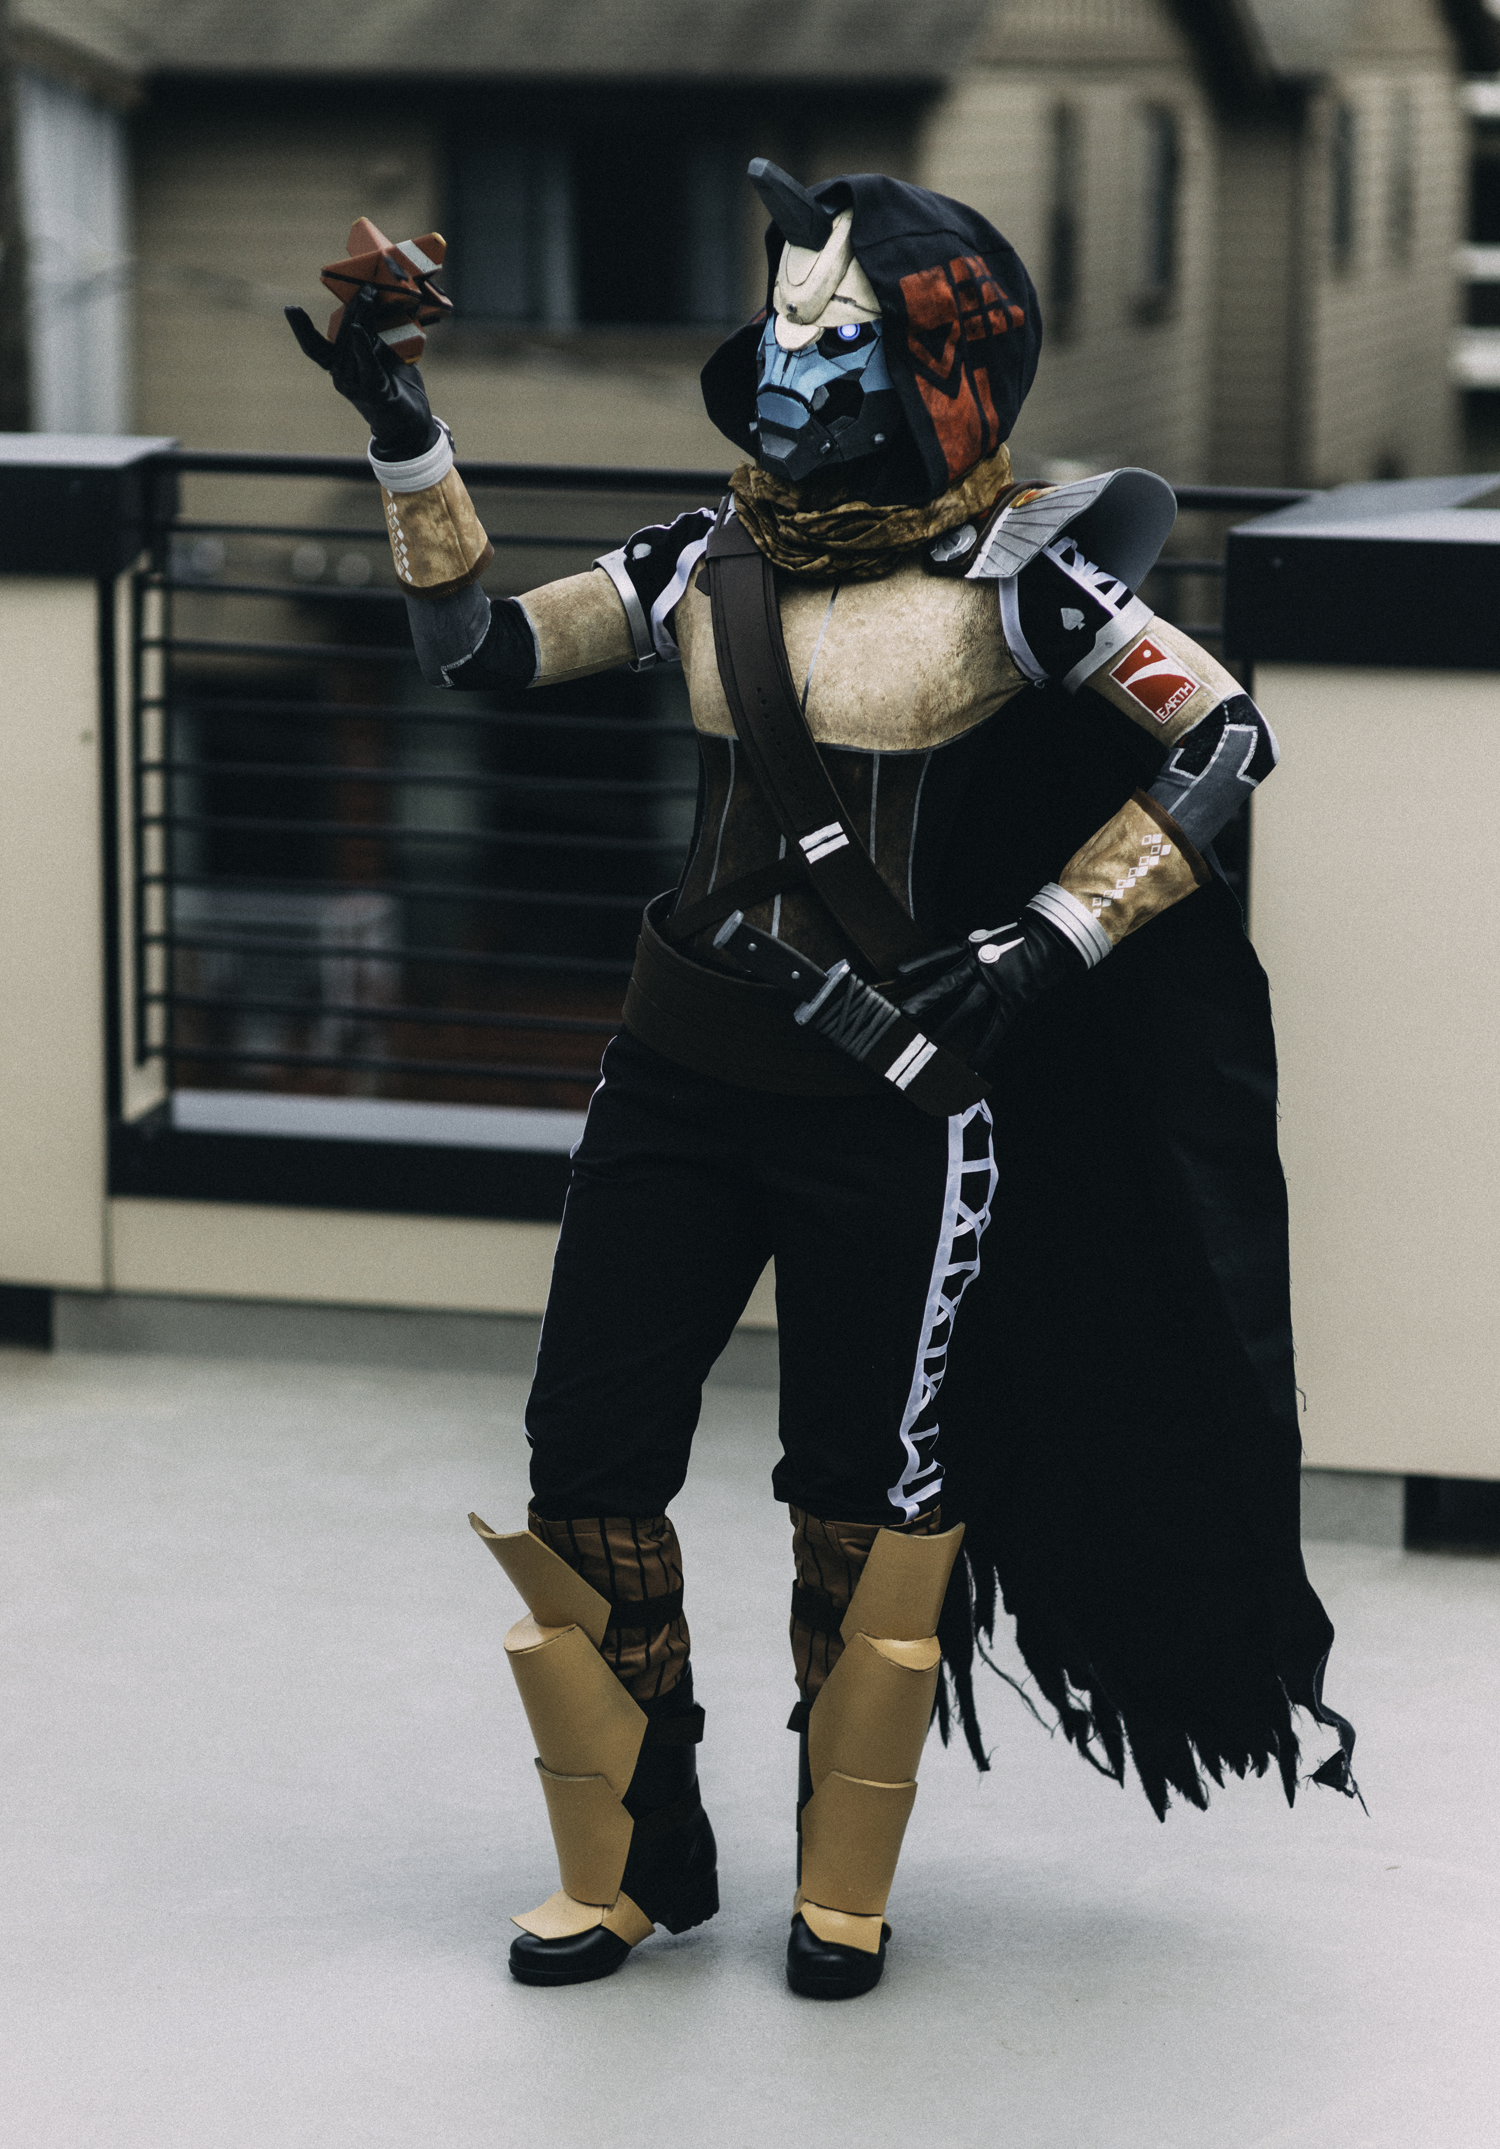 Self Cayde 6 From Destiny Cosplay Http Bit Ly 1pirklu